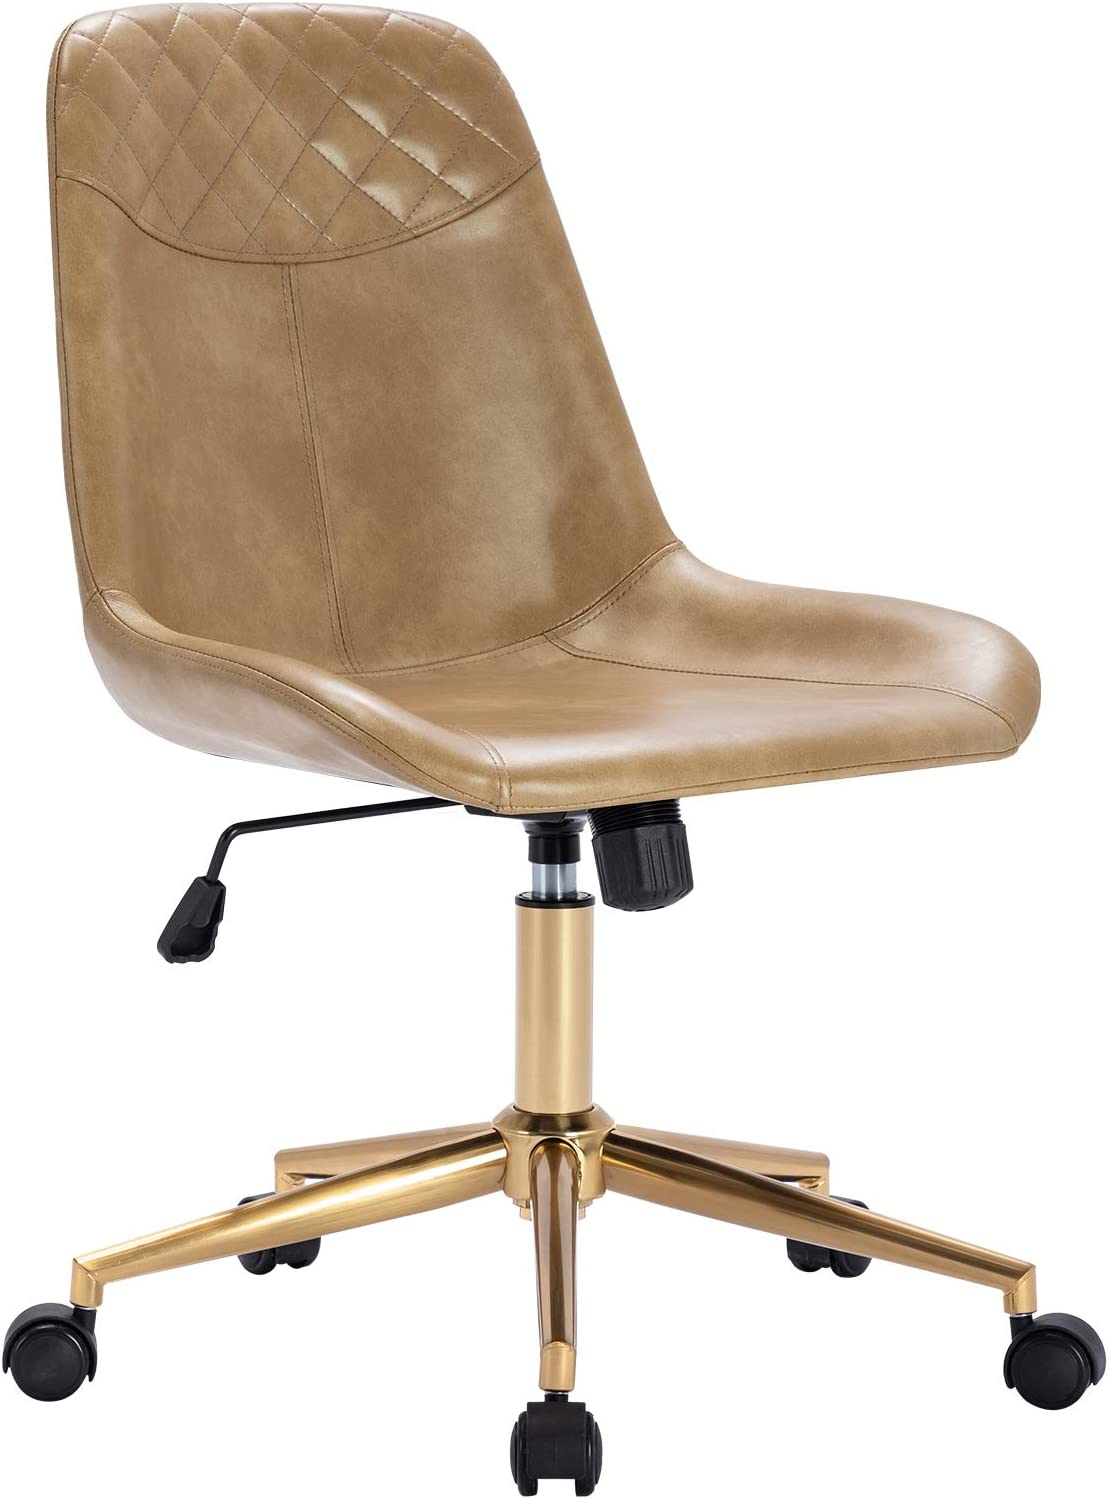 Duhome Modern PU Leather Office Chair Desk Chair Swivel Computer Chair with Gold Base Cream